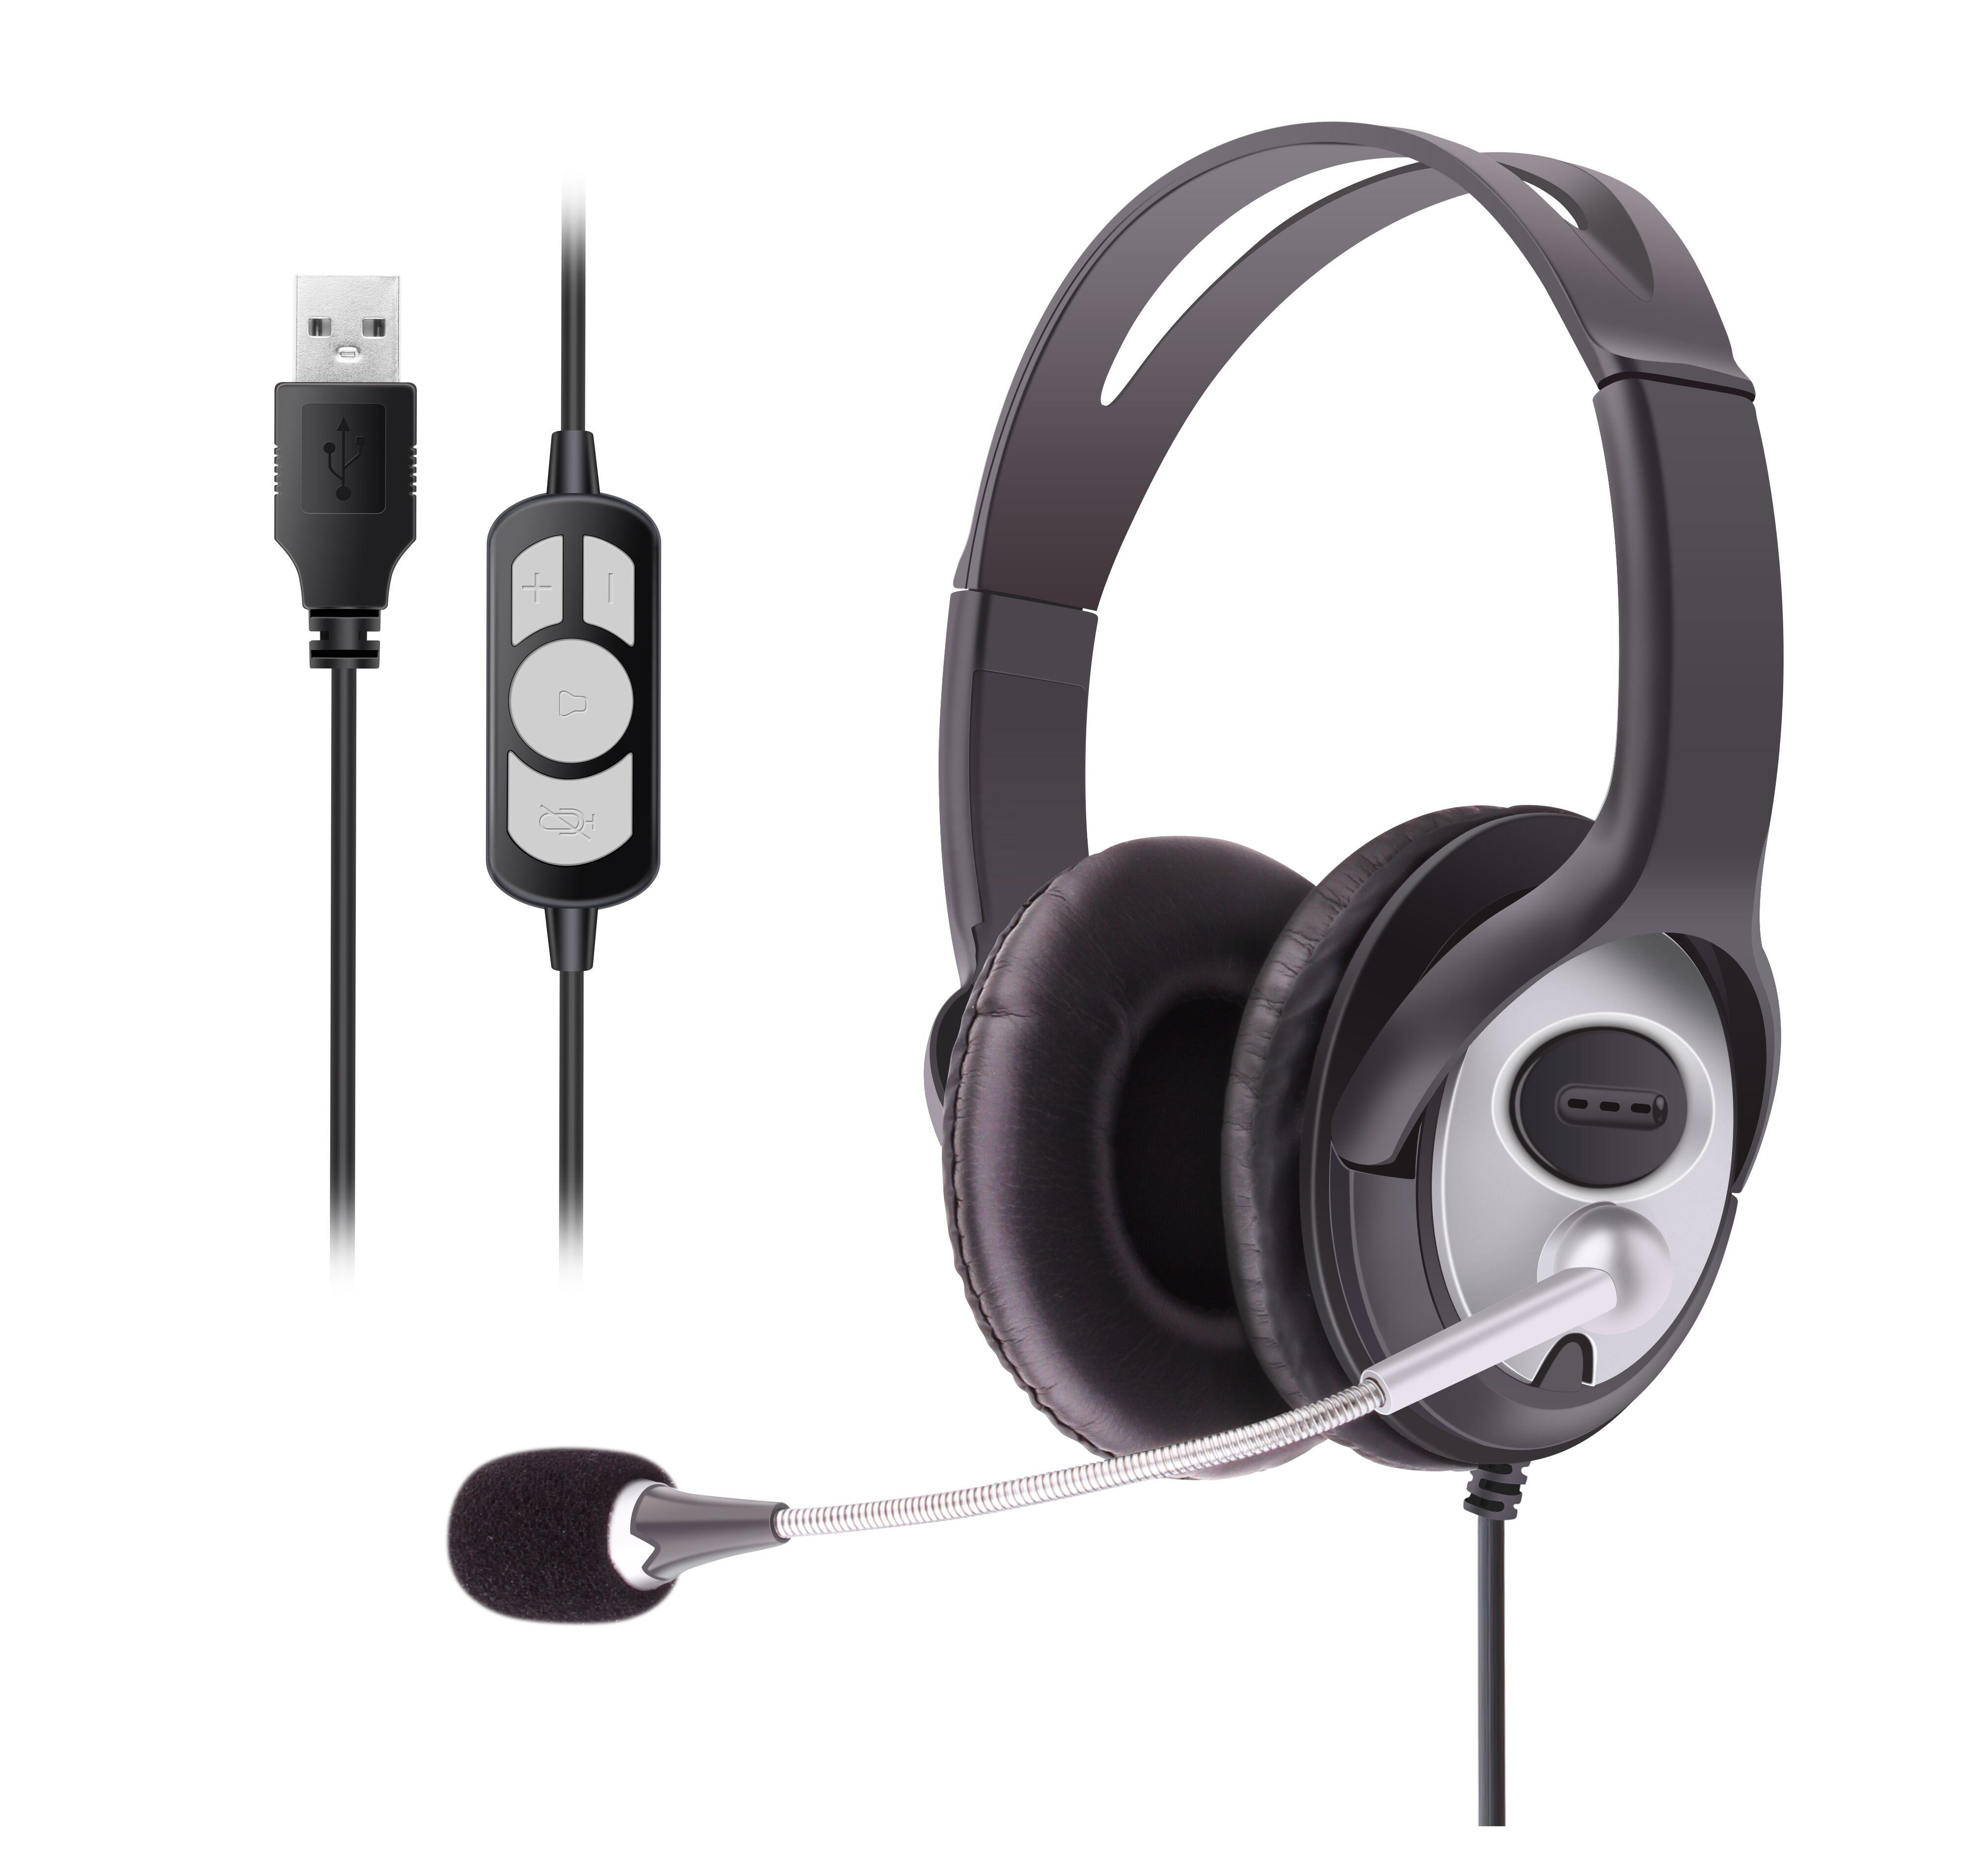 Smaller Light Weight Microphone OV Headphones Cheaper Gaming Pc Headphone Business Wired Usb Headphone